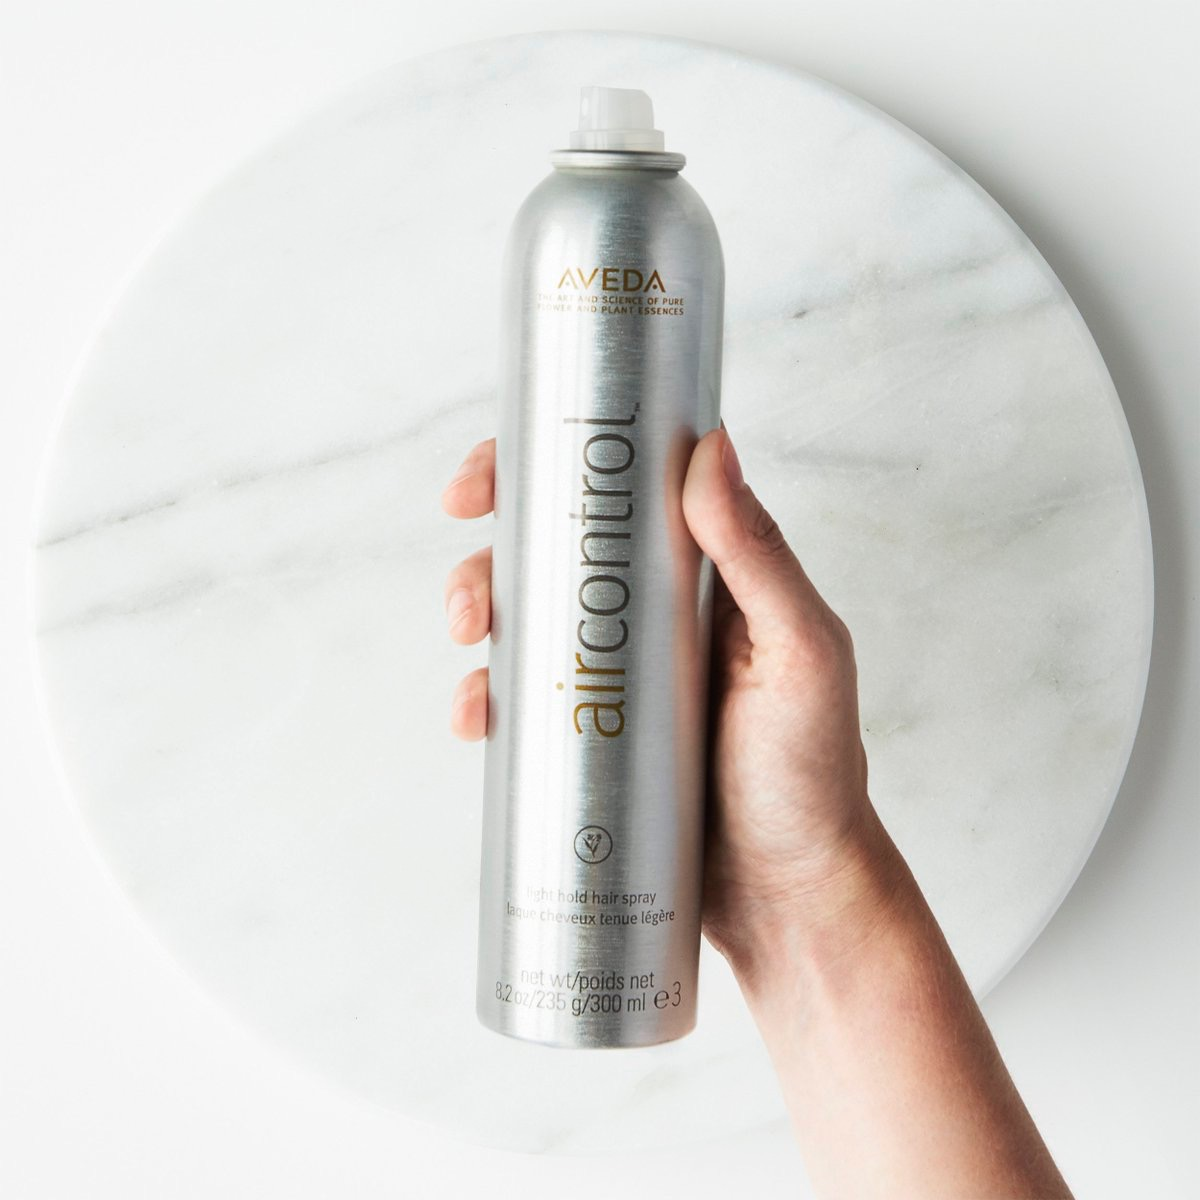 Air Control Hairspray - The final step in kicking the frizz all day is a fabulous finishing spray. Stylists love using Air Control to seal in frizz free hairstyles because this light hold spray is buildable to a firm hold without without creating any stickiness. And who doesn't love that signature Aveda aroma?